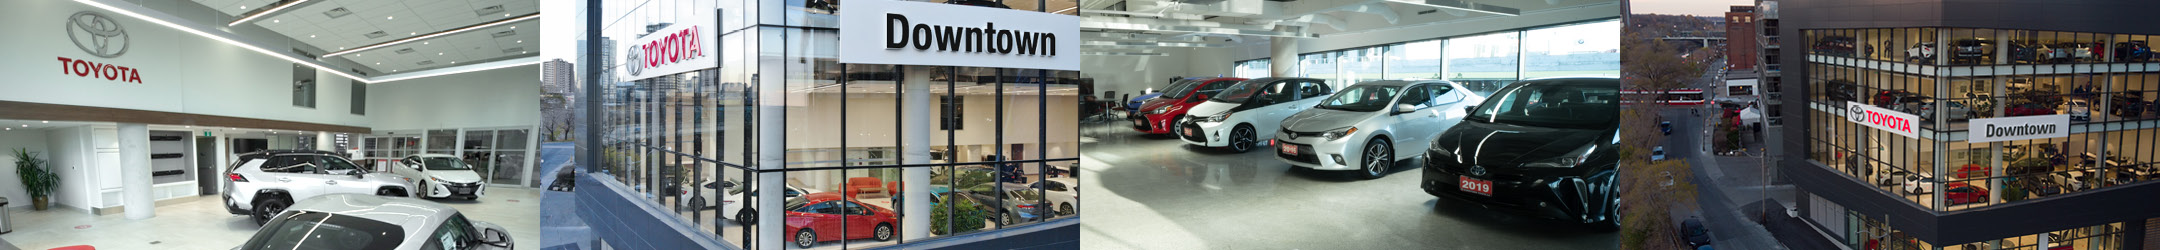 Interior and exterior images of Downtown Toyota.